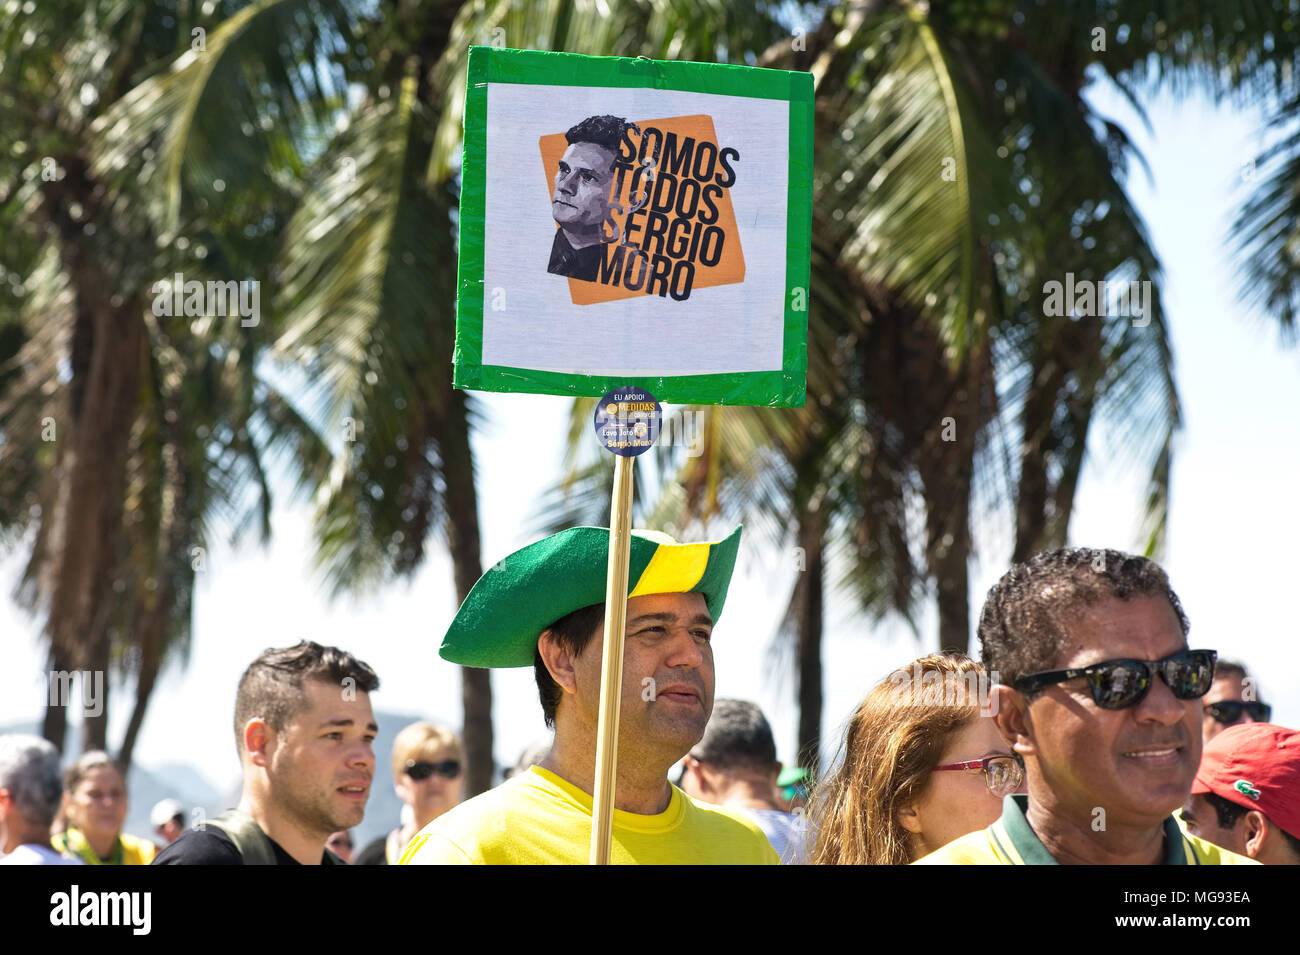 Copacabana, Rio de Janeiro, Brazil - July 31, 2016: Demonstrator shows his support for anti-corruption efforts being pursued by the judge Sergio Moro - Stock Image